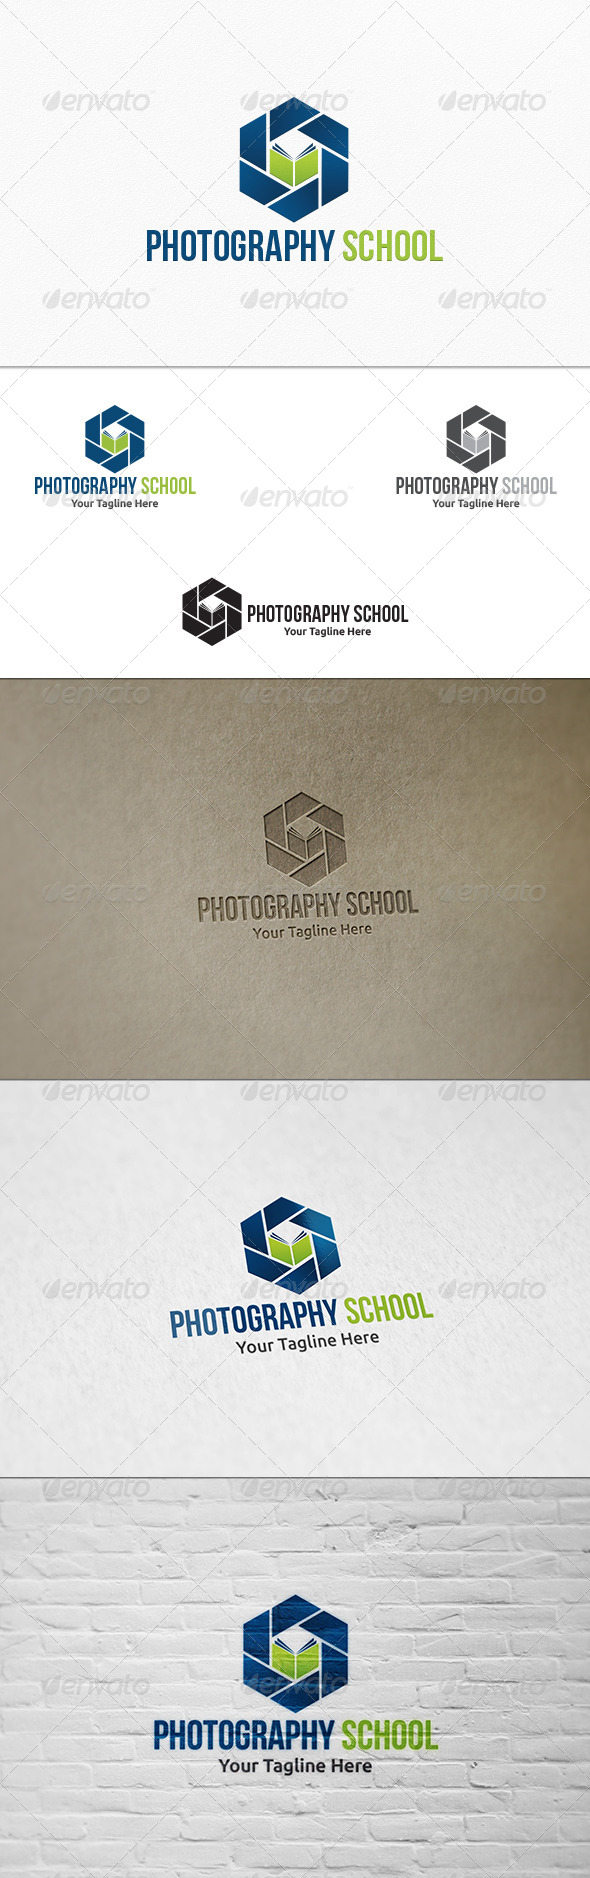 GraphicRiver Photography School Logo Template 8078208